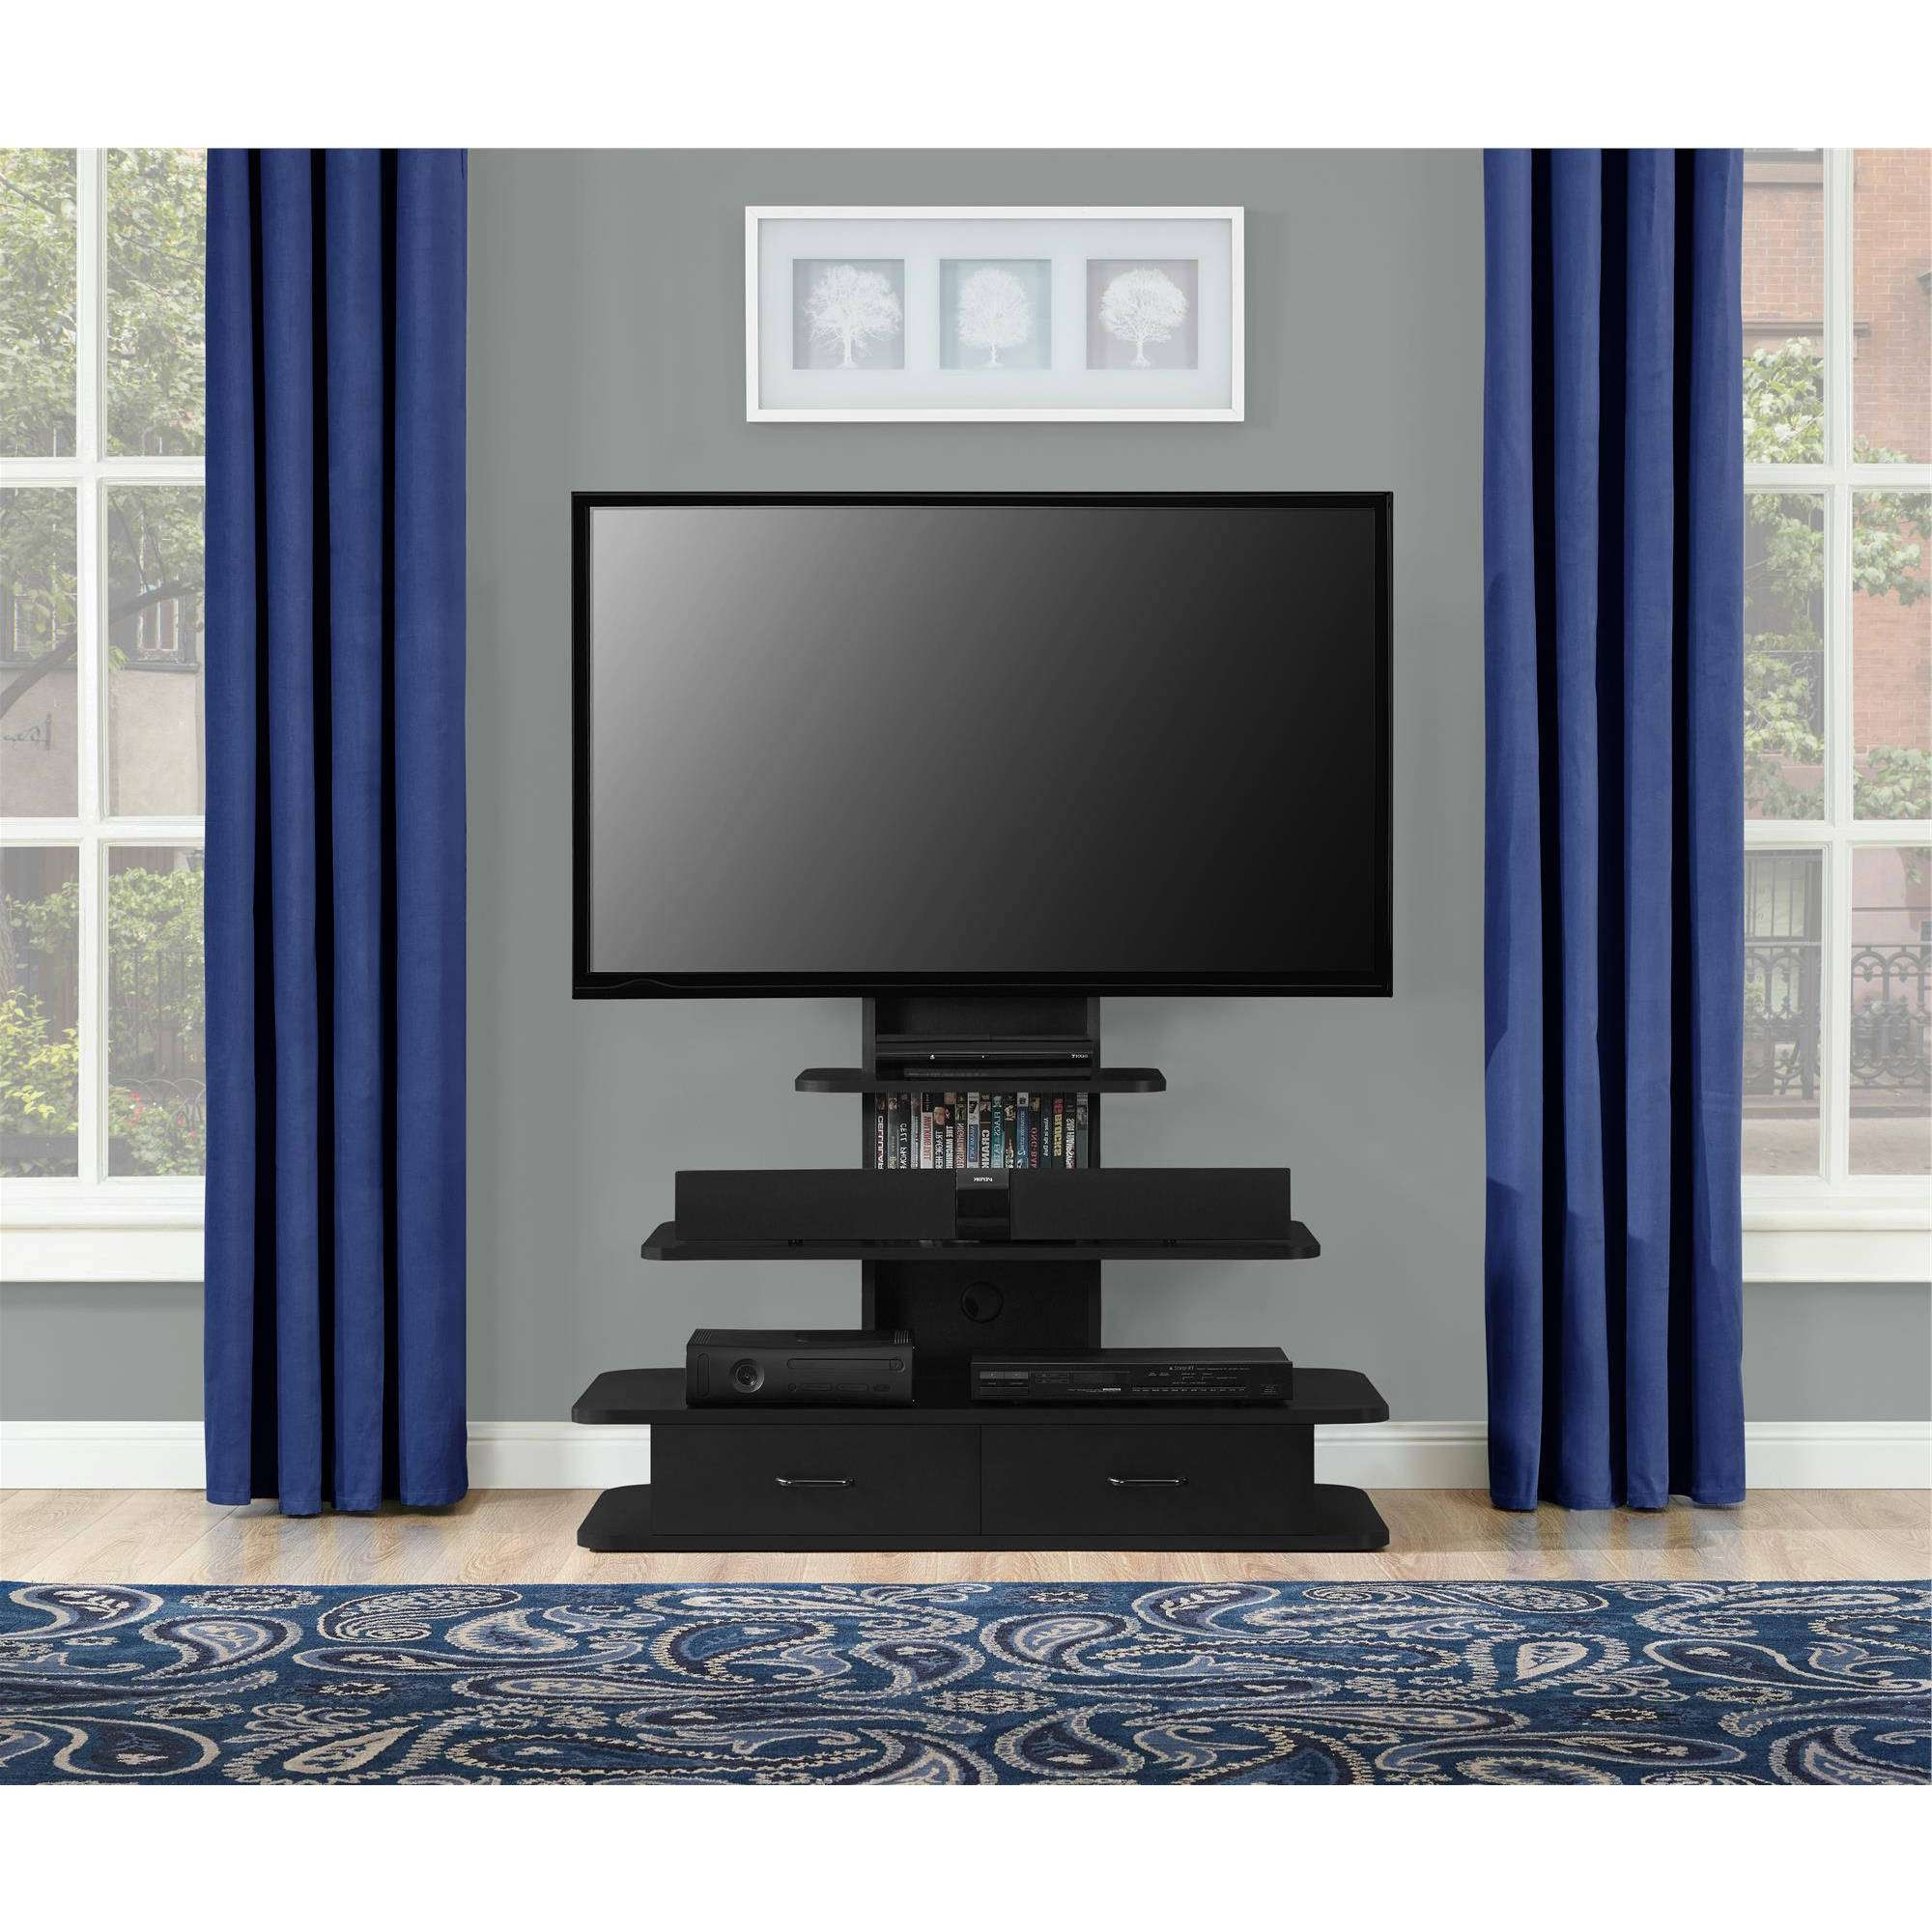 Black Freestanding Tv Stand With Mount And Drawers Of Cool Tv Within Freestanding Tv Stands (View 6 of 15)